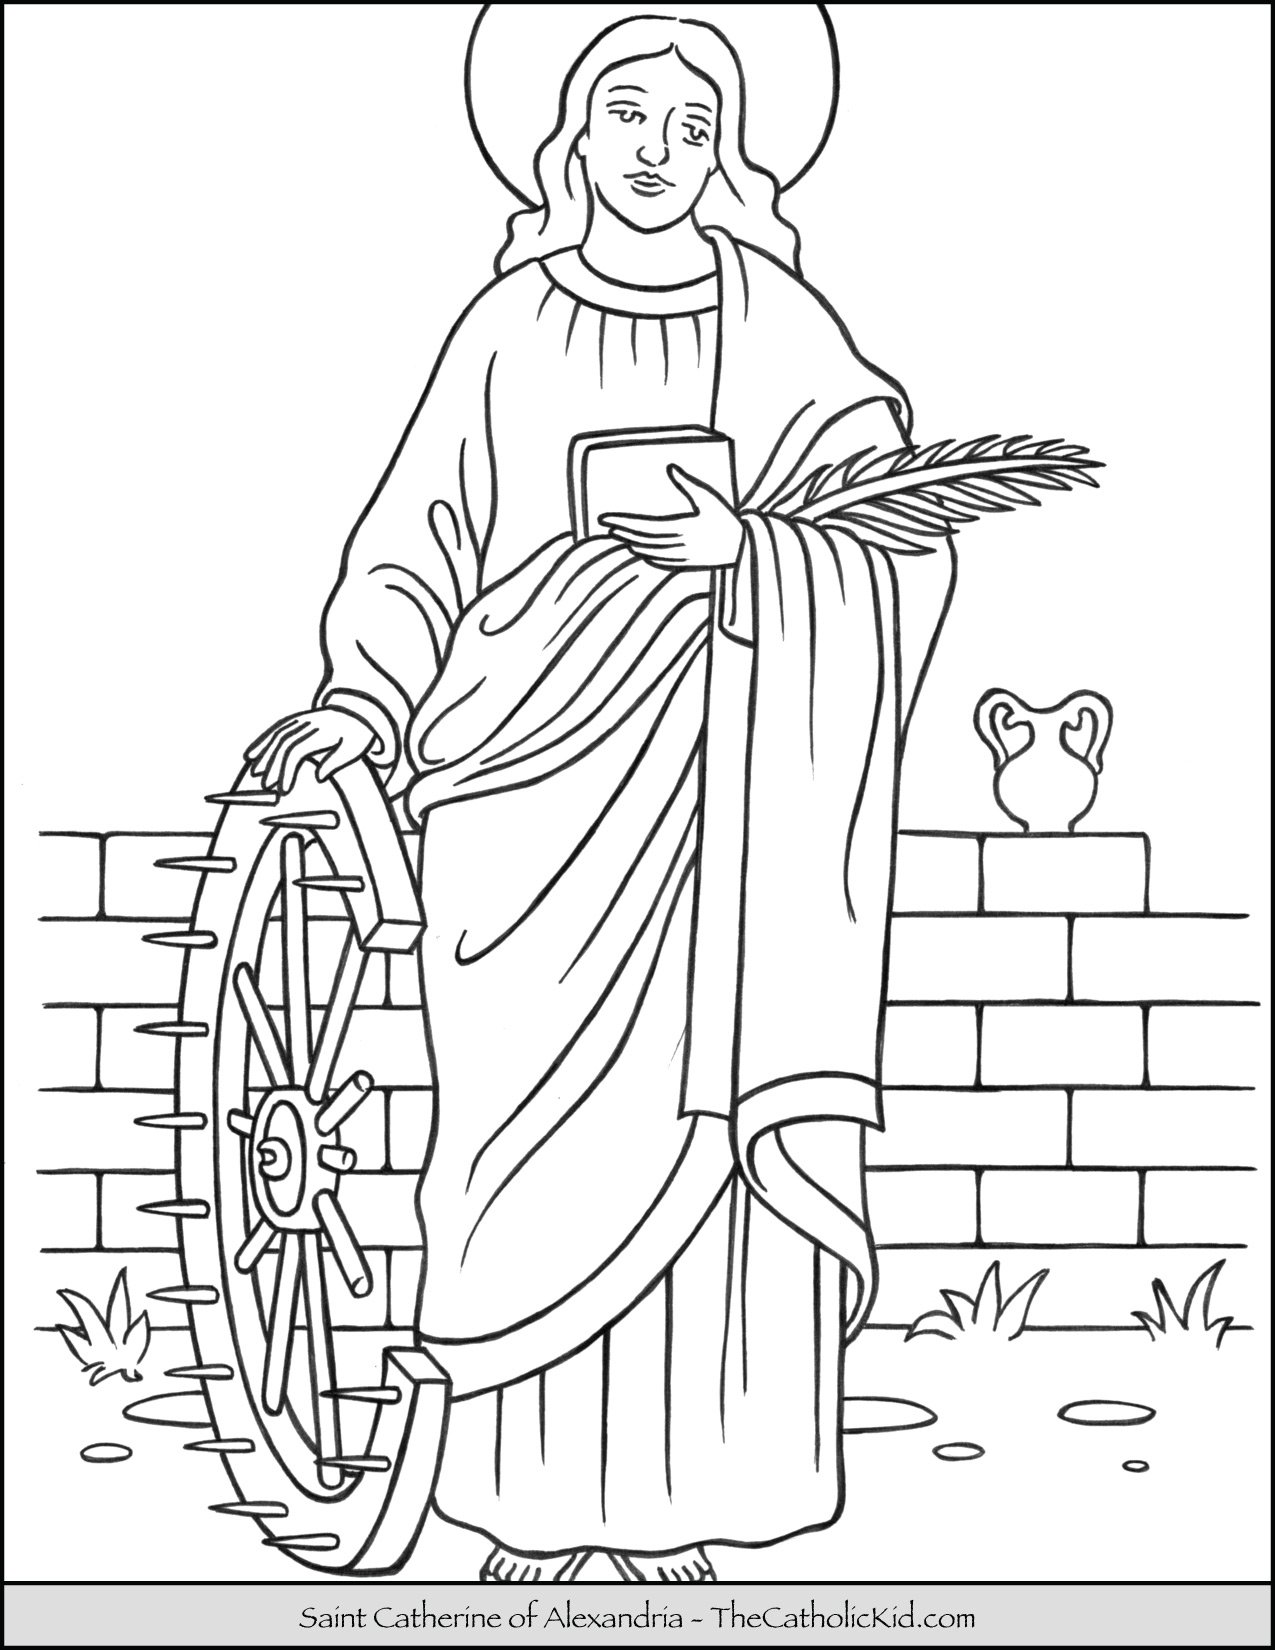 Saint Catherine of Alexandria Coloring Page